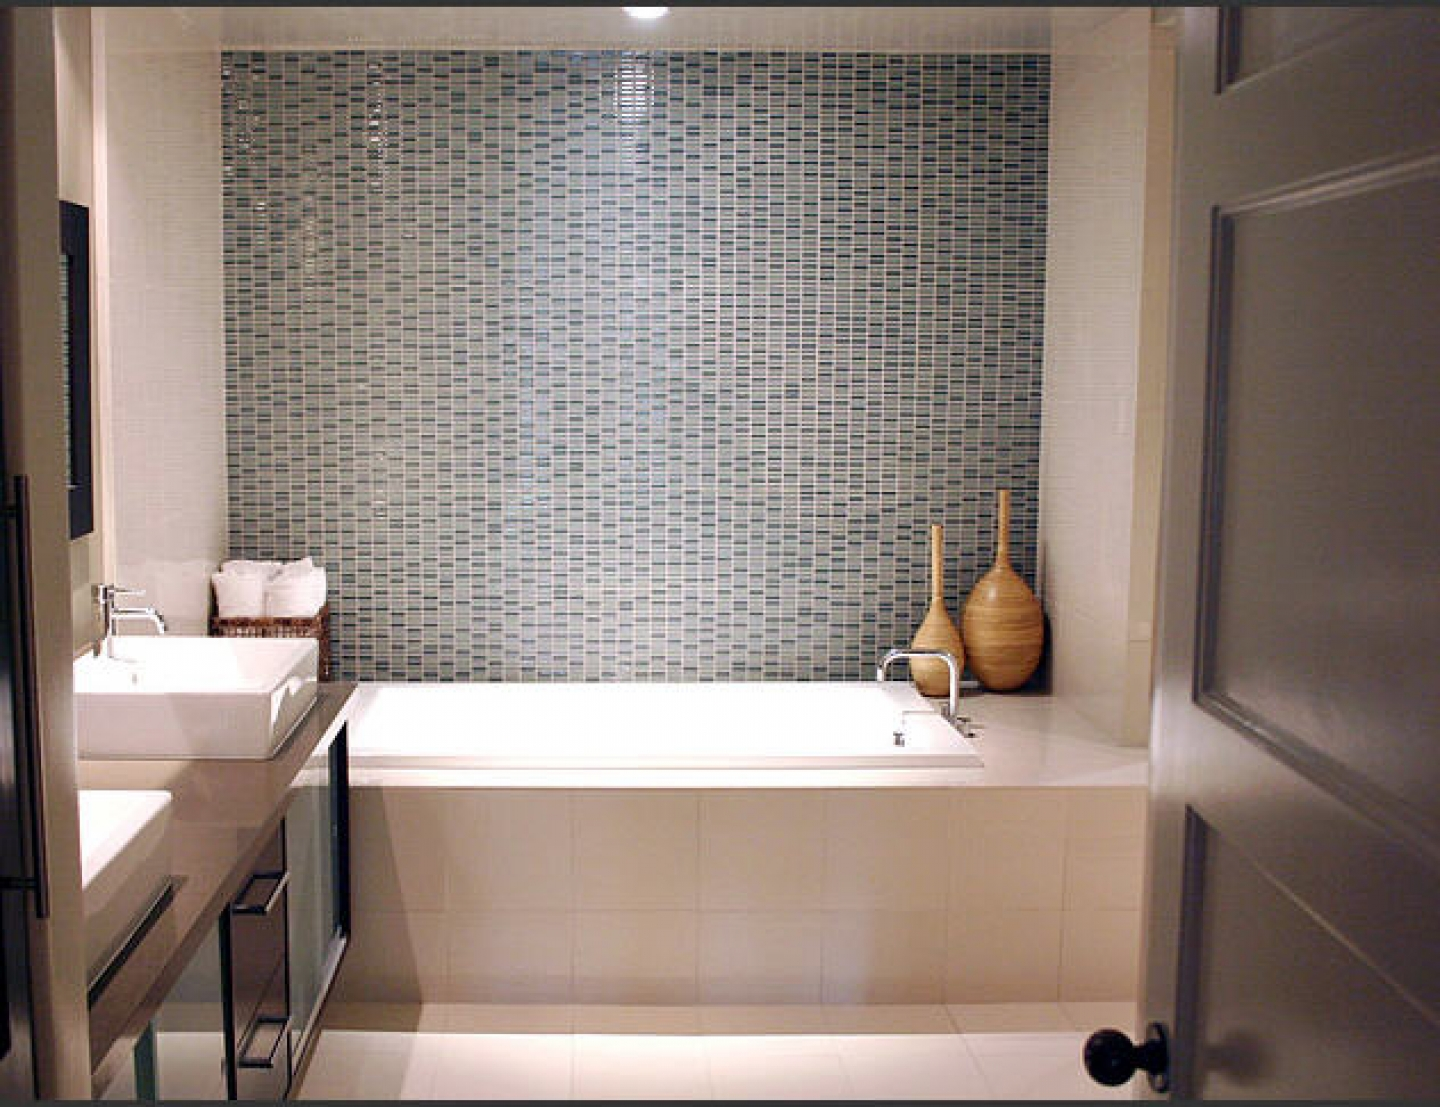 Bathroom Remodel Ideas With Glass Tile 30 great ideas of glass tile for bath